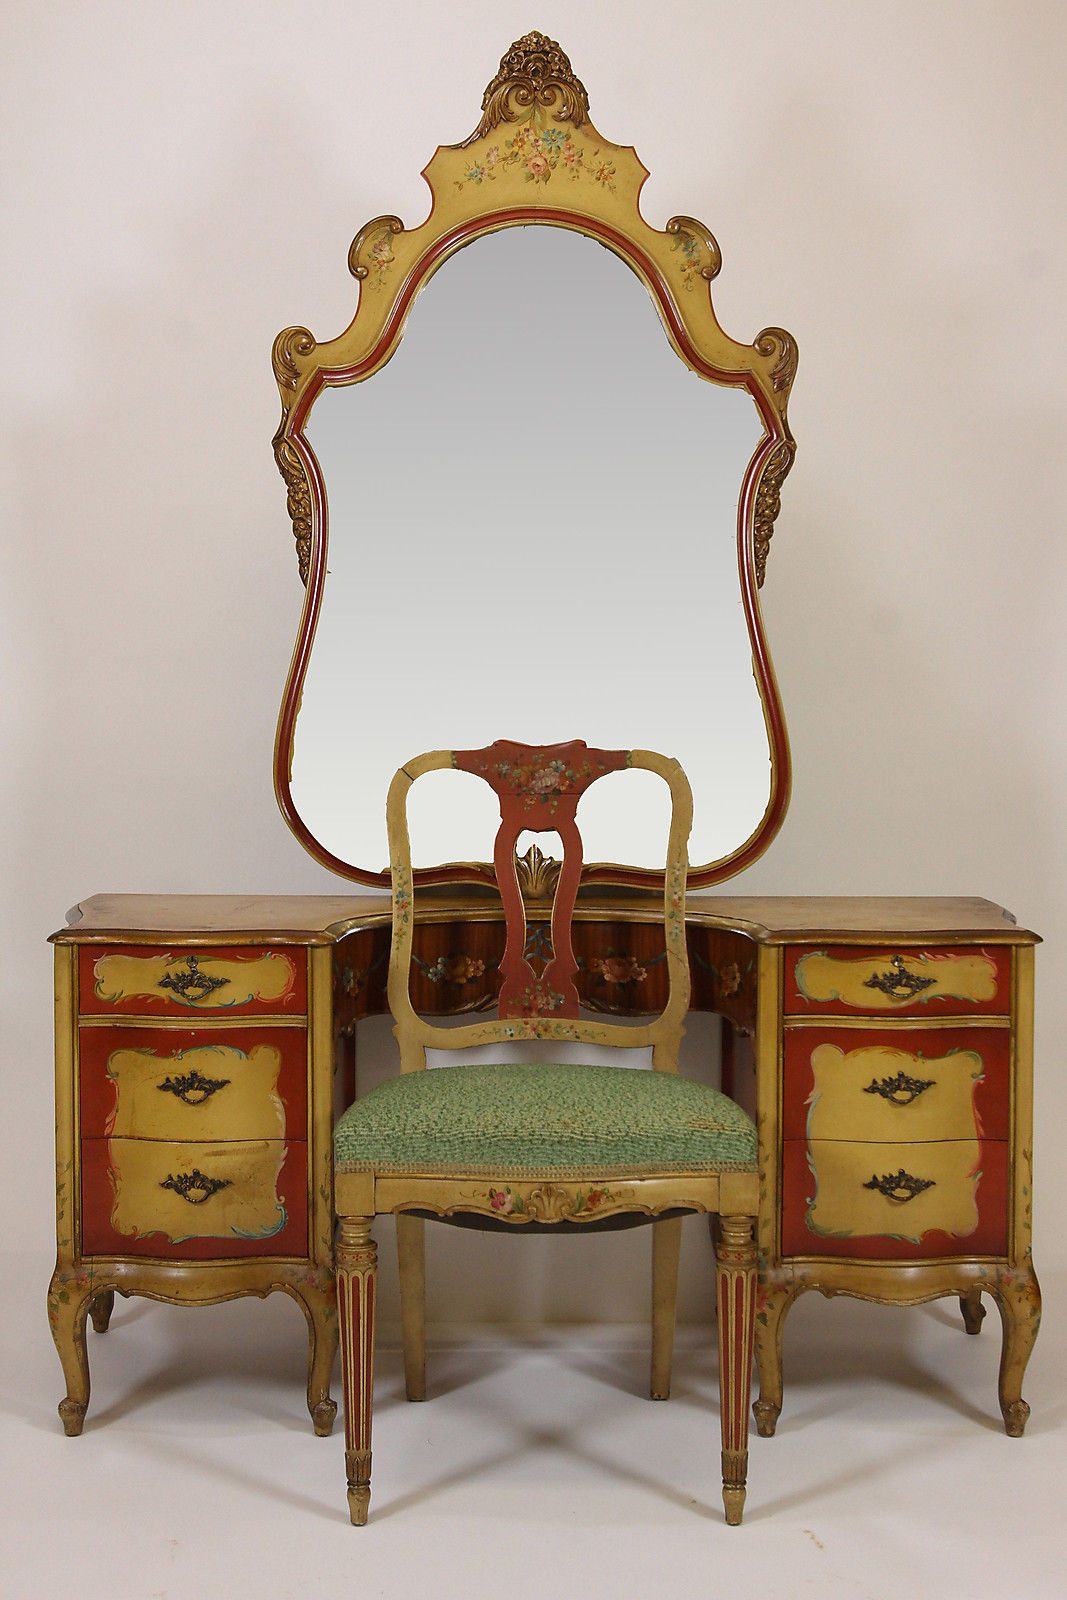 Dresser with mirror and chair - Antique Robert W Irwin Hand Painted Vanity Desk Chair Mirror Phoenix Furniture